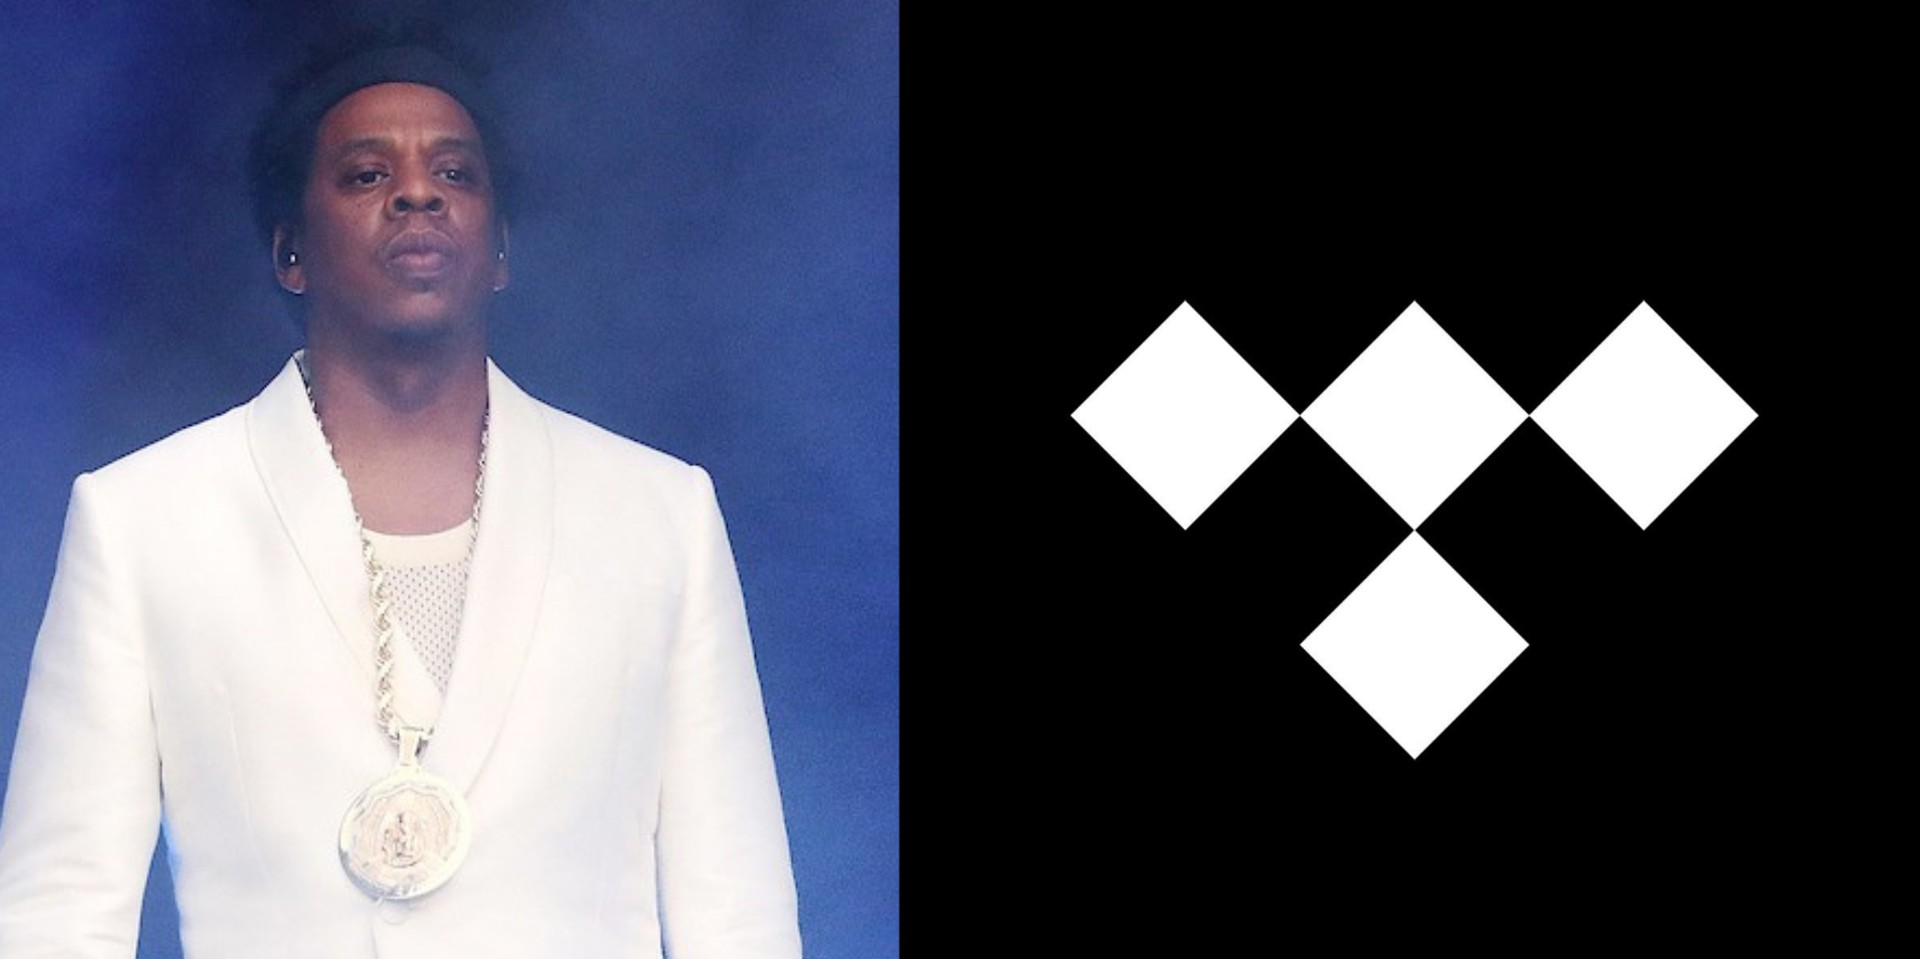 Jay-Z sells majority ownership in music streaming platform TIDAL to Square, Inc.